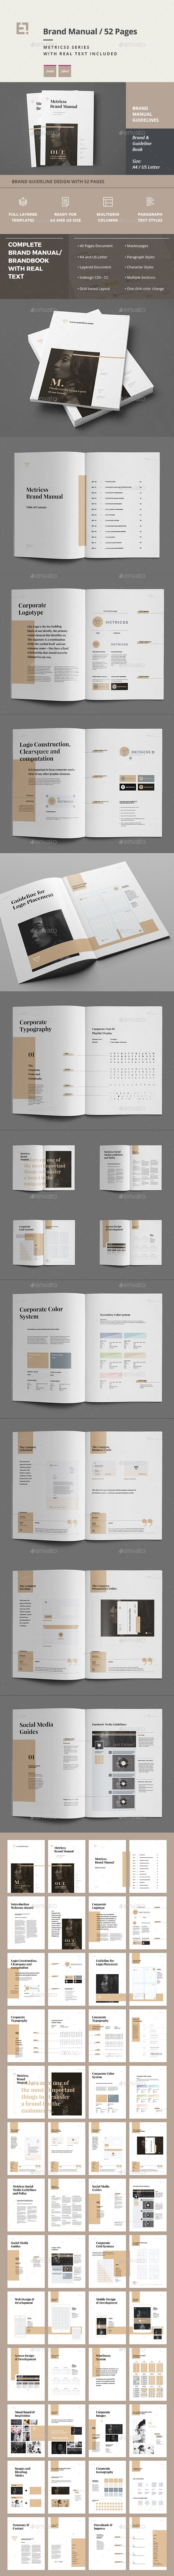 Brand Manual Template InDesign INDD. Download here: https://graphicriver.net/item/brand-manual/17046162?ref=ksioks